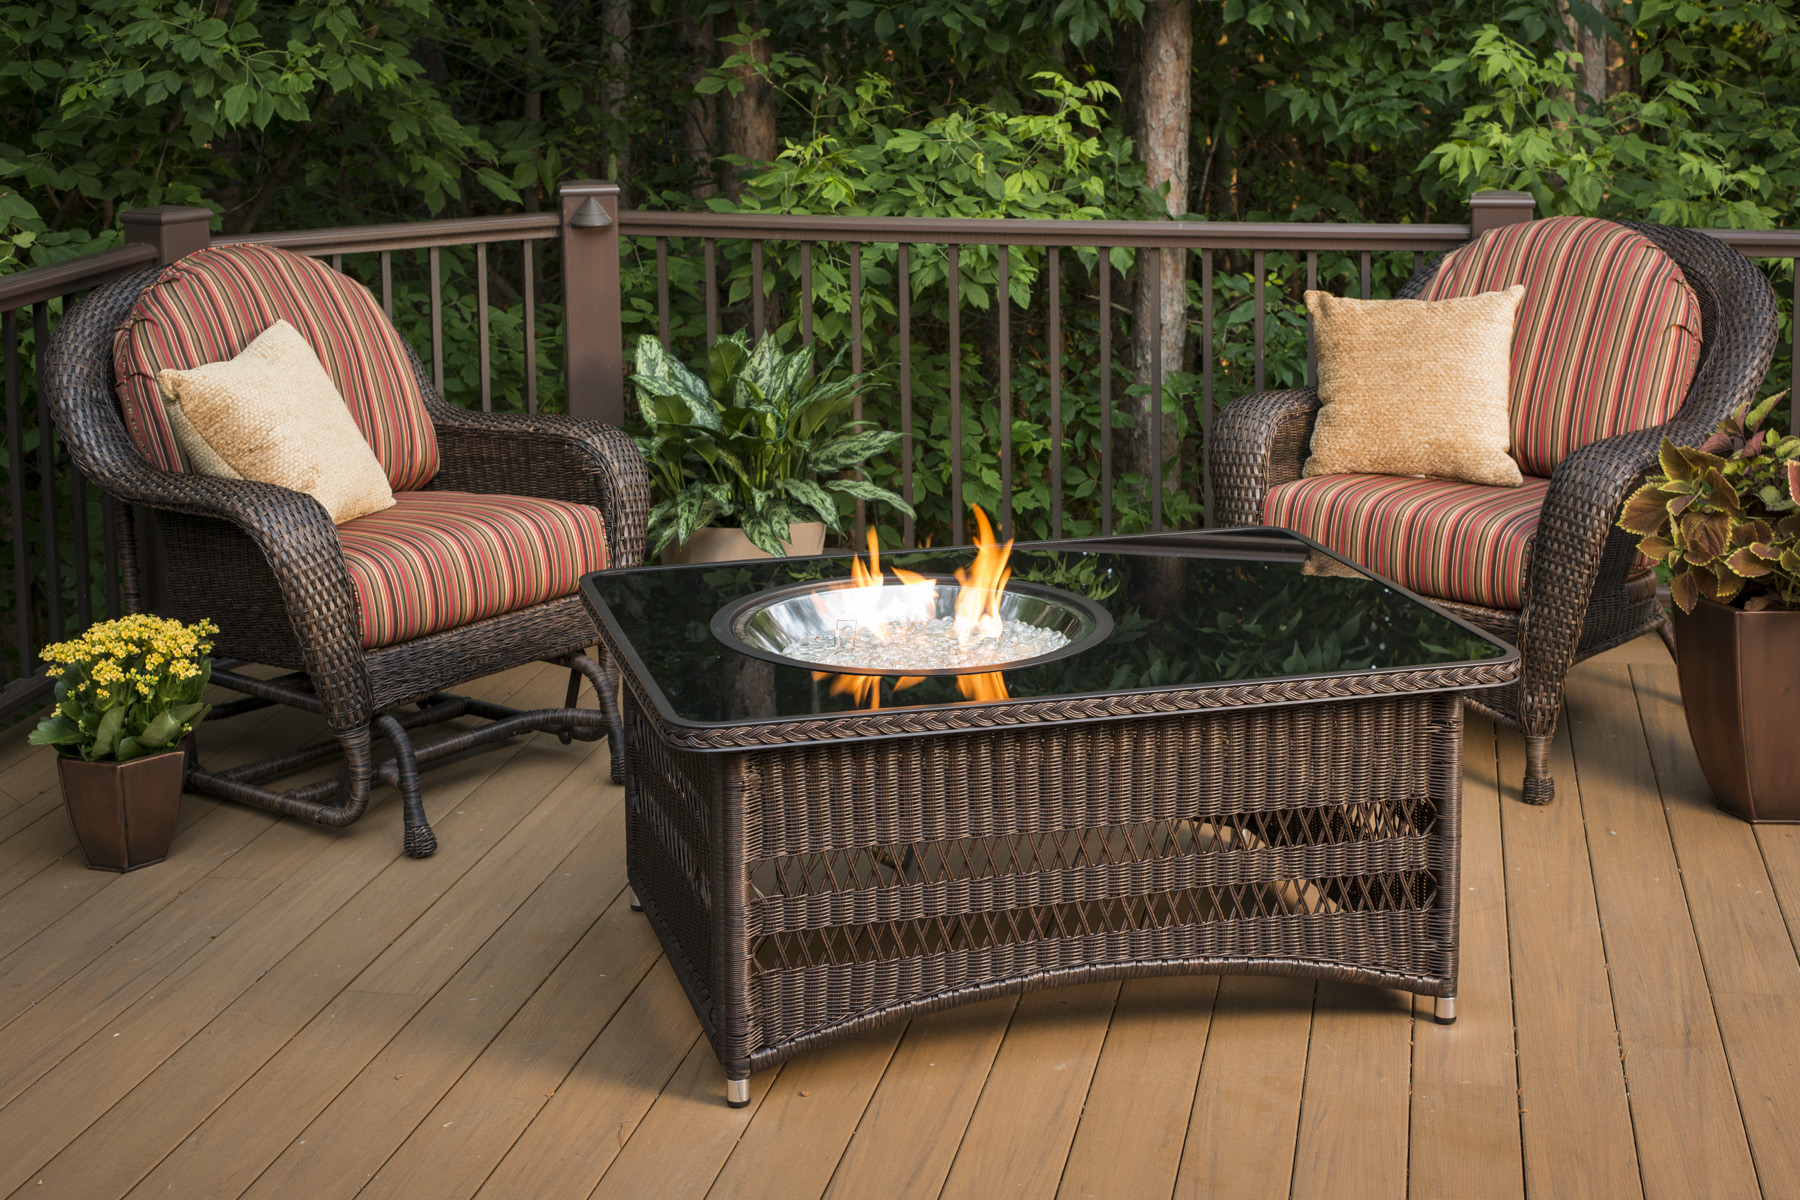 Propane Fire Pit Safe For Wood Deck Decks Ideas intended for dimensions 1800 X 1200